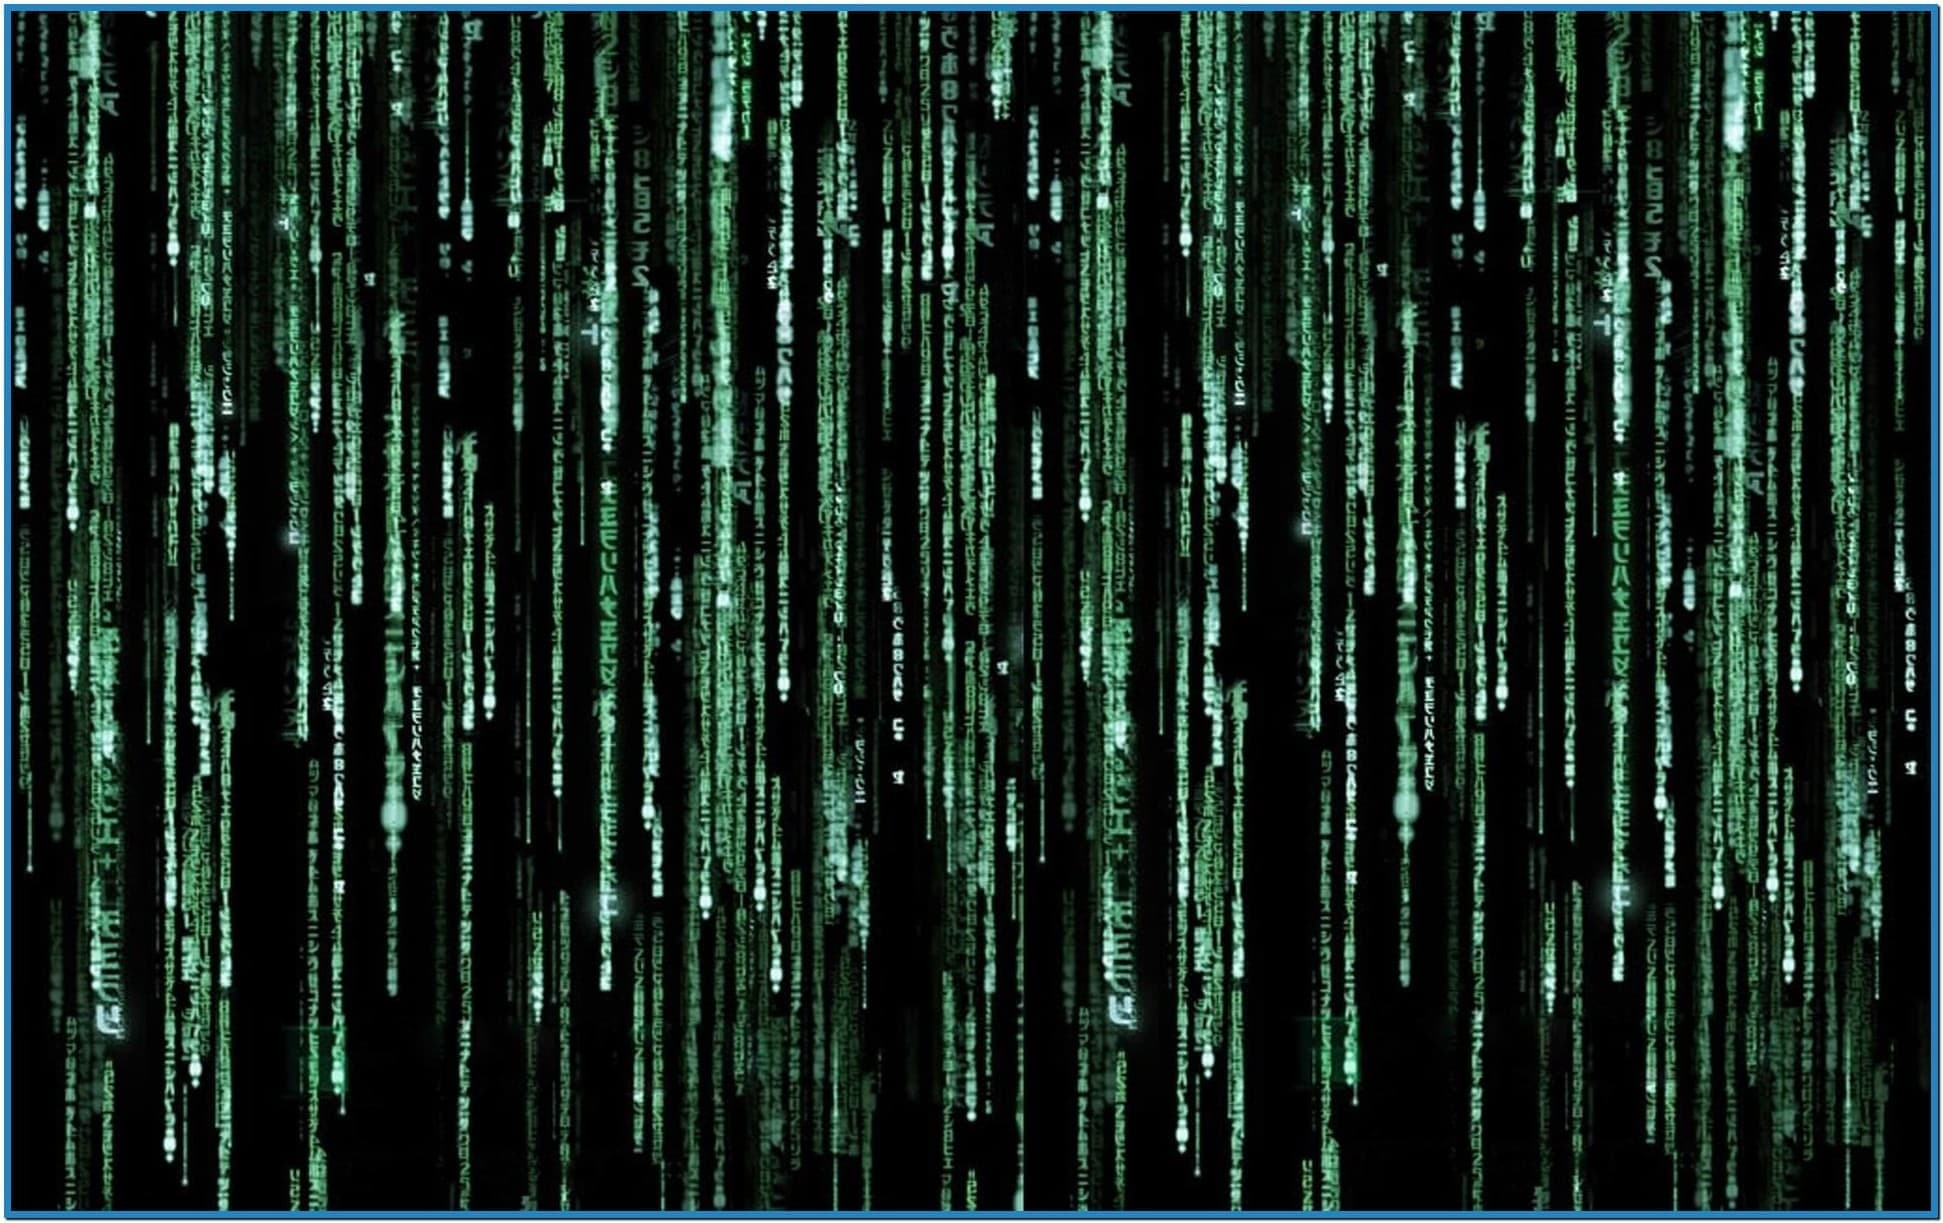 Matrix Screensaver Windows 8